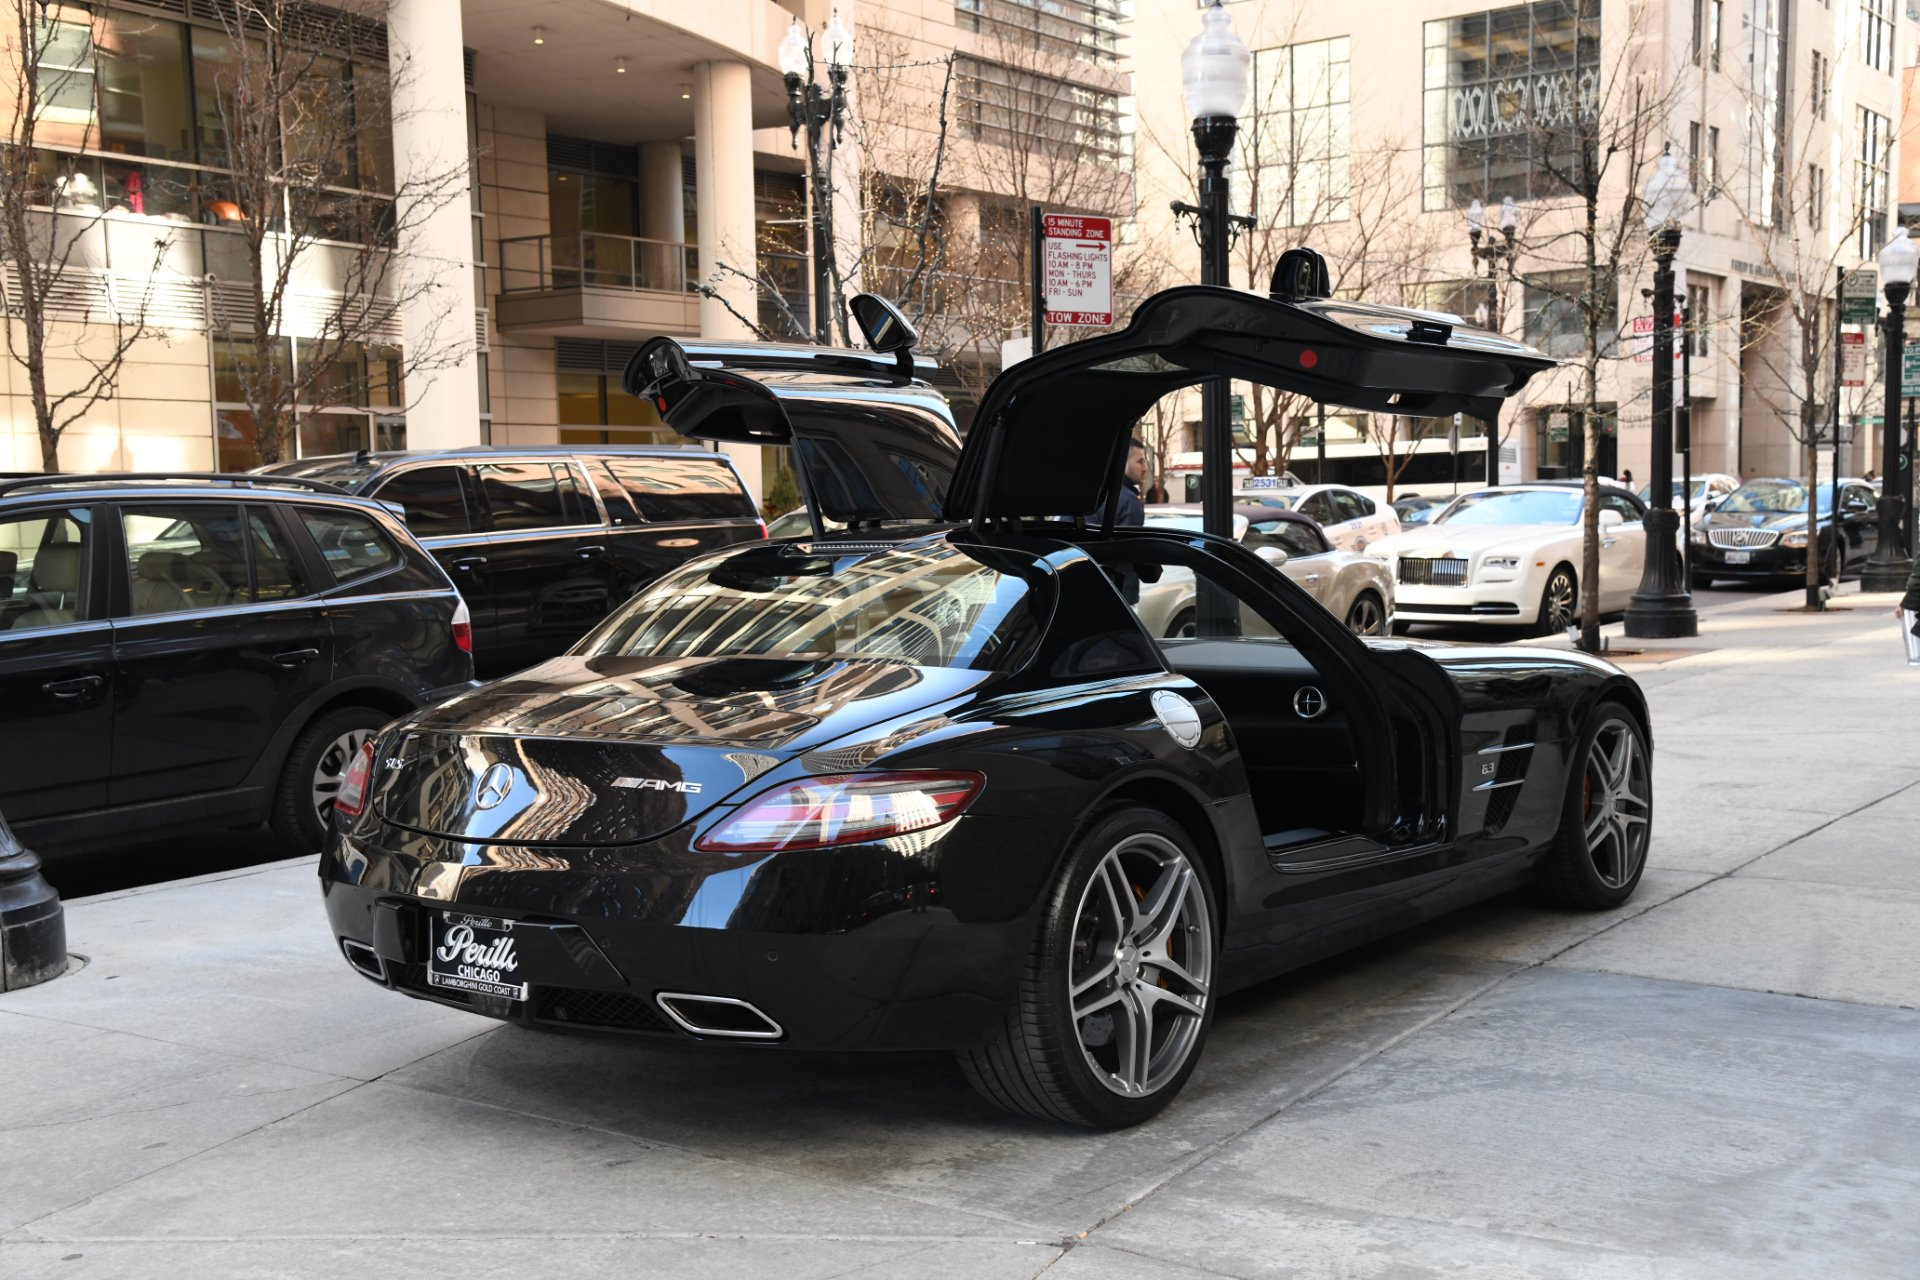 2011 mercedes benz sls amg stock l438c for sale near for Mercedes benz chicago dealers